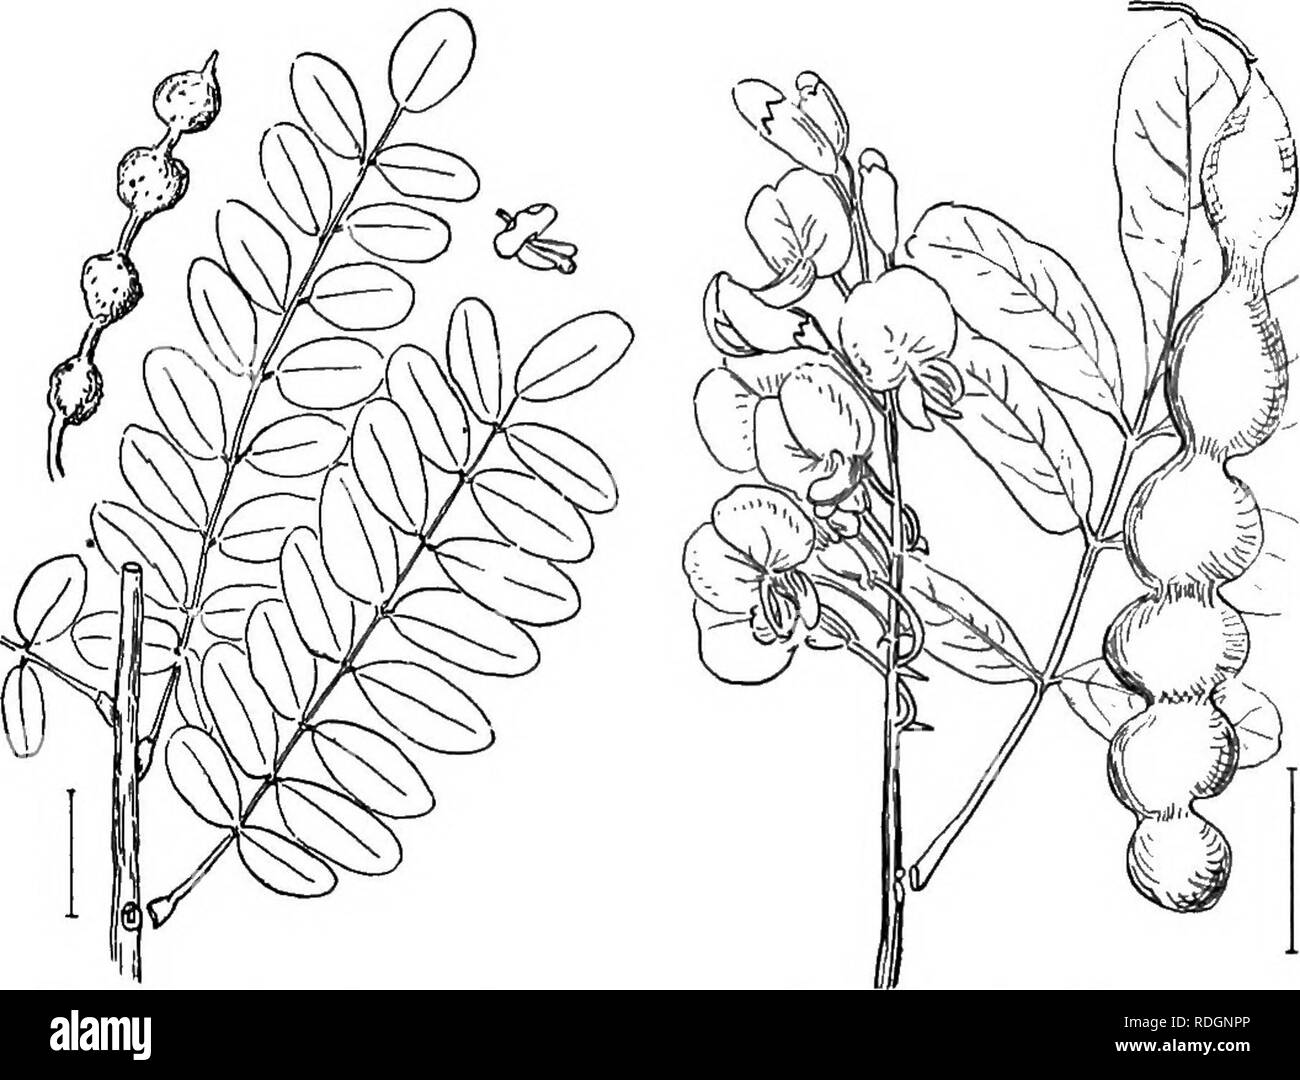 . Ornamental shrubs of the United States (hardy, cultivated). Shrubs. SOPHORA 111 J. Small, slightly hairy leaves. Evergreen Sumach (124) — RIius integrifblia. J. Larger and smoother leaves. Rhus ovita. Sophbra. The Sophoras form a rather large group of evergreen and deciduous trees, shrubs, and herbs, but few of them are in cultivation in America. The leaves are alternate, odd-pinnate, and in the different species range in number of blades from 5 to over 50. The clustered white, pinkisli, purplish, or yellow pea-like flowers are in most species less than an inch long, but in one of the evergr - Stock Image